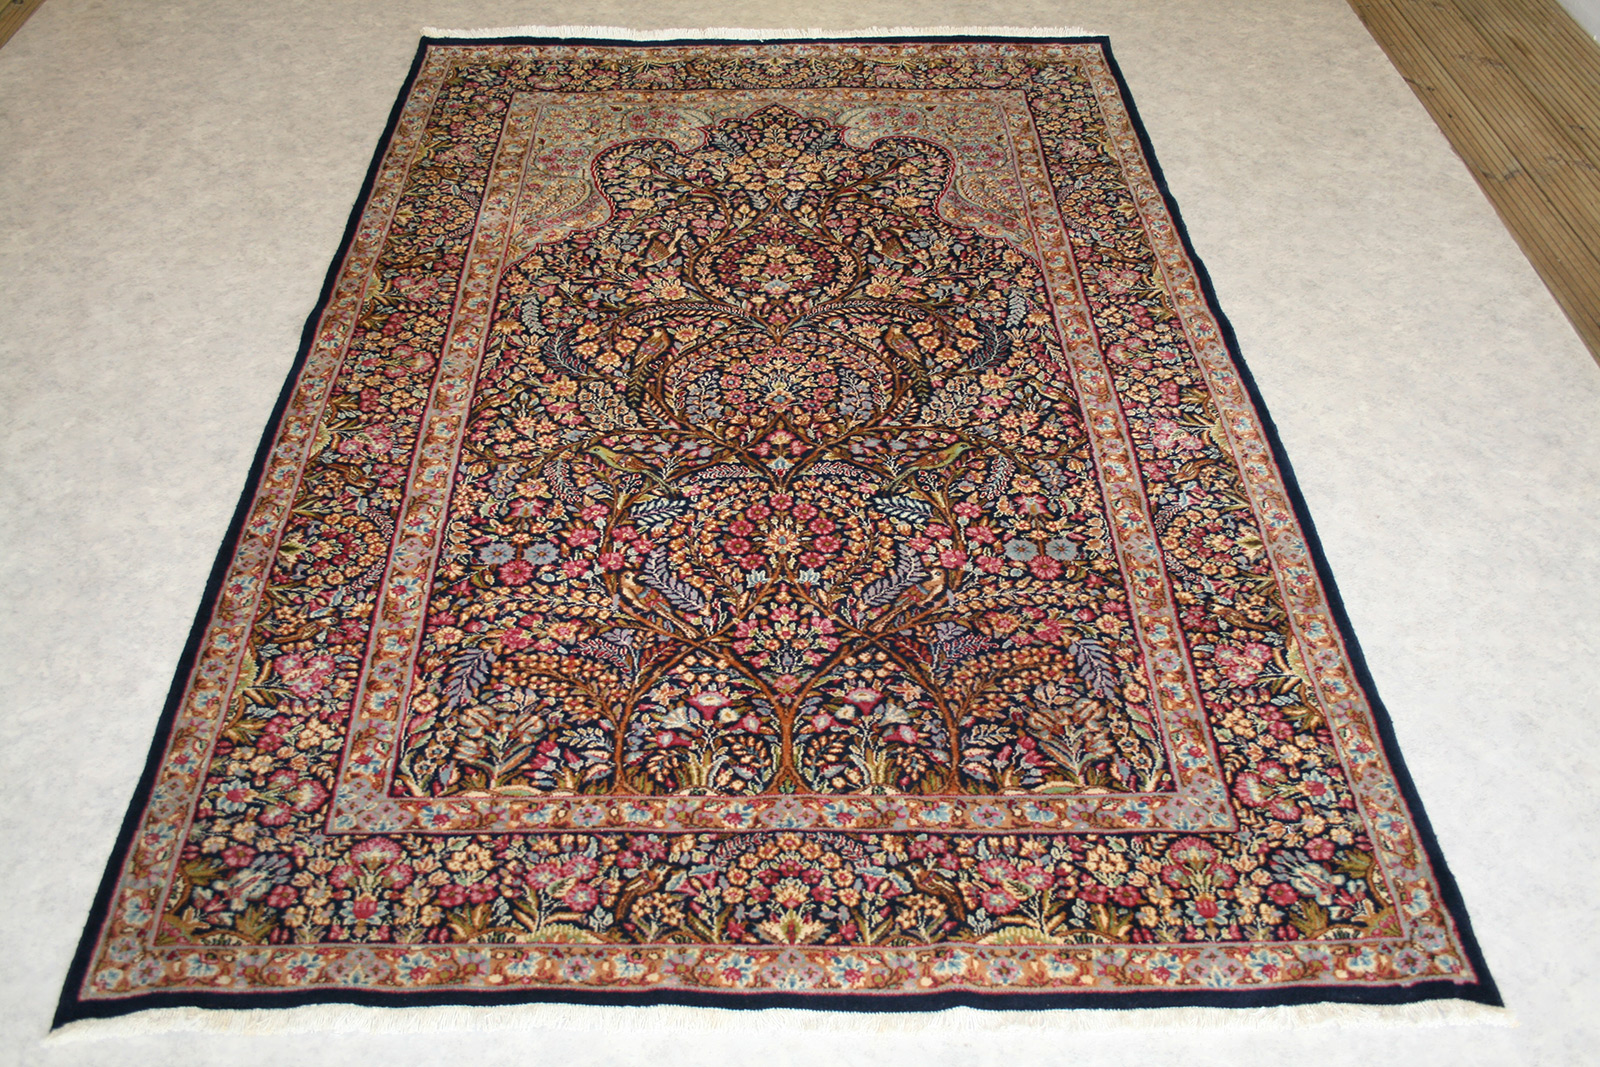 Persian Hand Knotted Kerman Rug In Wool Cotton Foundation